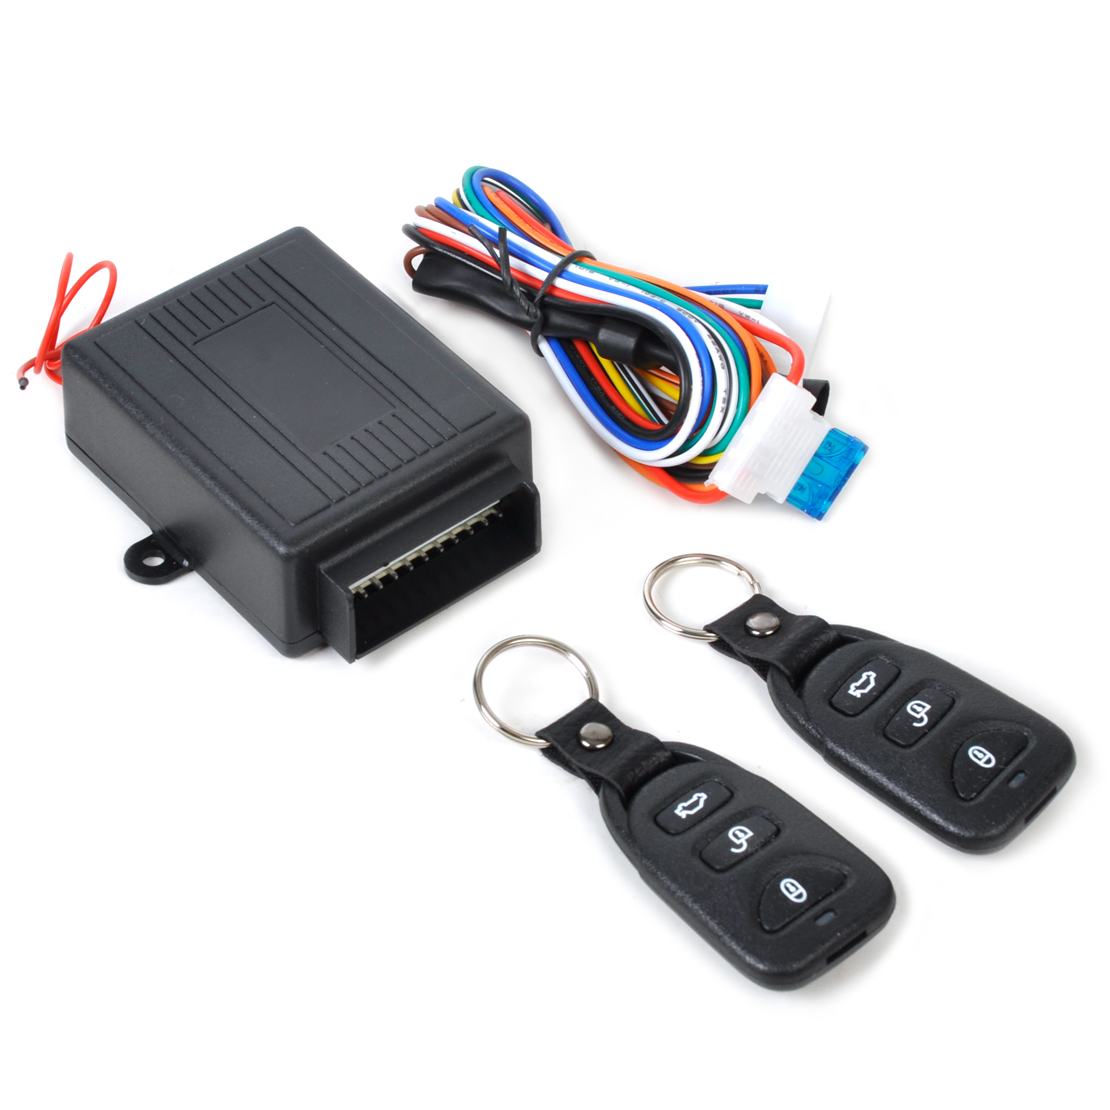 hight resolution of details about universal car remote control door lock locking kit security keyless entry system